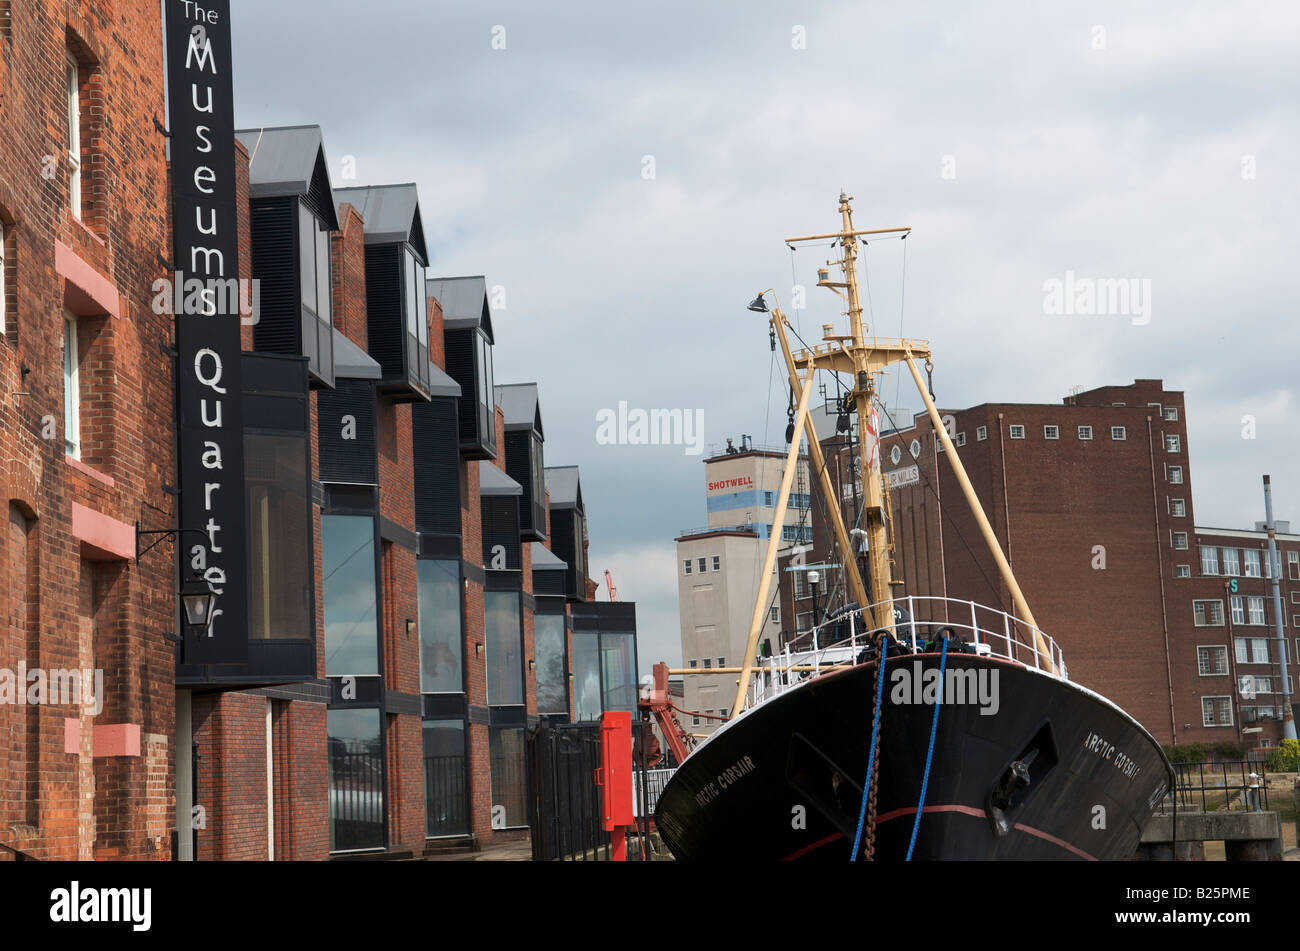 The Arctic Corsair at the Museum Quarter in Kingston upon Hull. - Stock Image